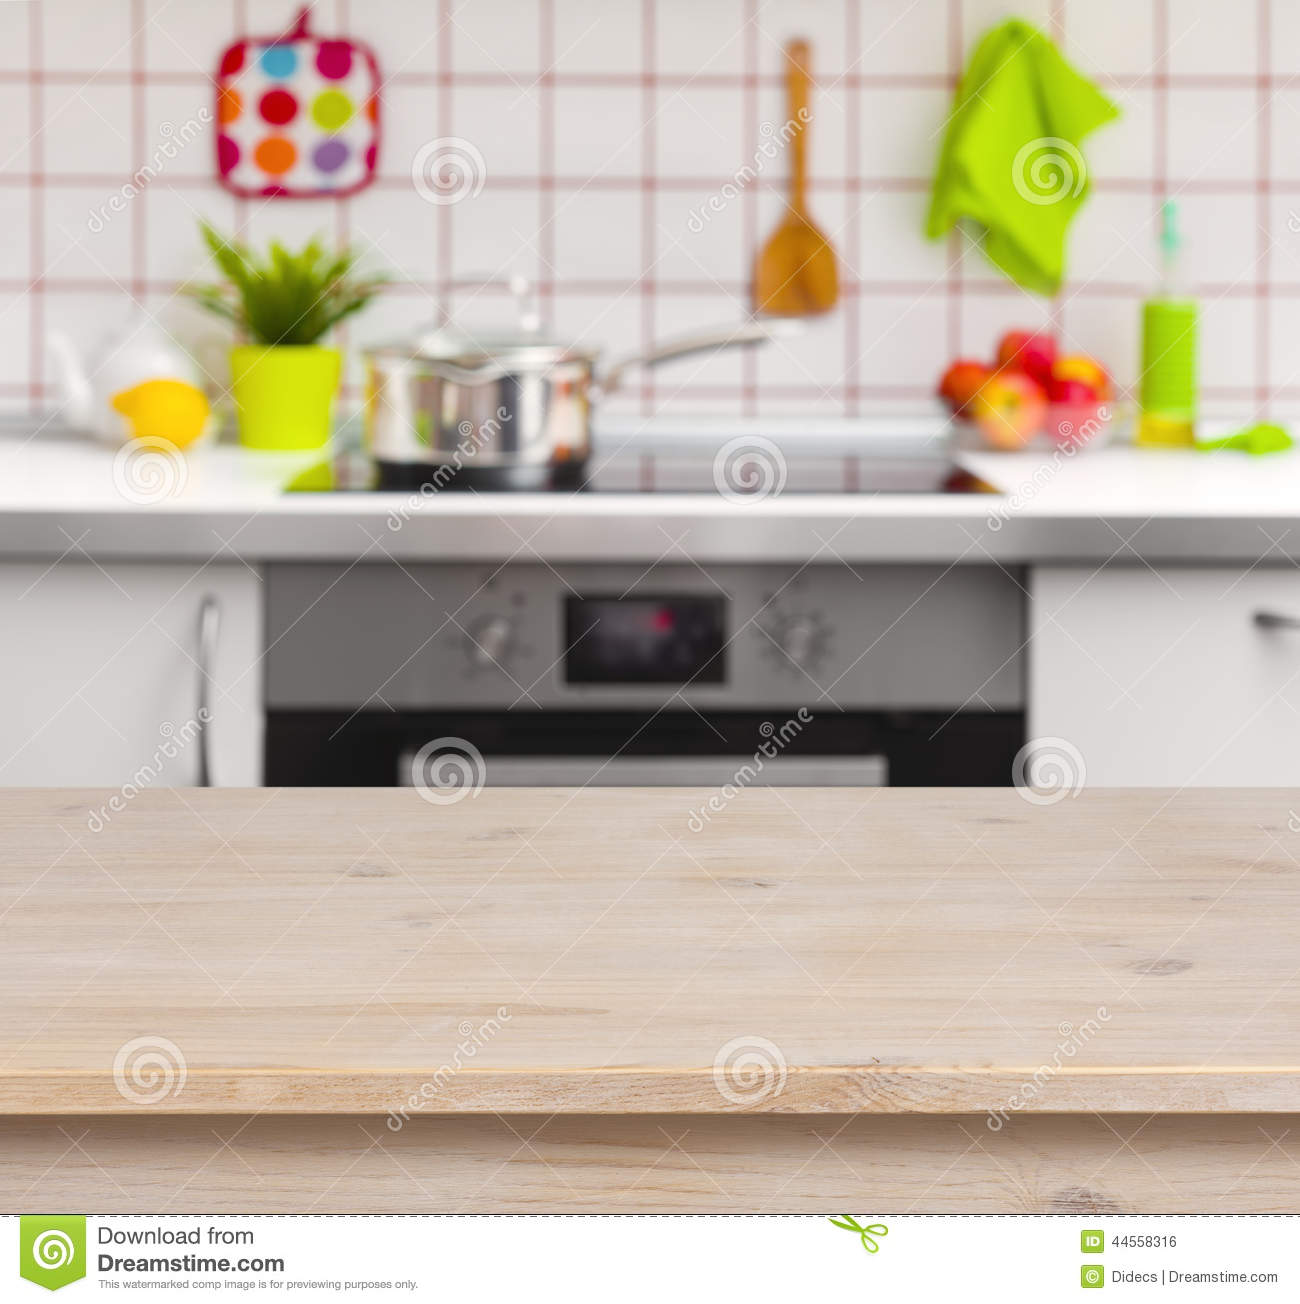 Kitchen Table Background Inspiration Wooden Table On Blurred Kitchen Bench Background Stock Photo Inspiration Design